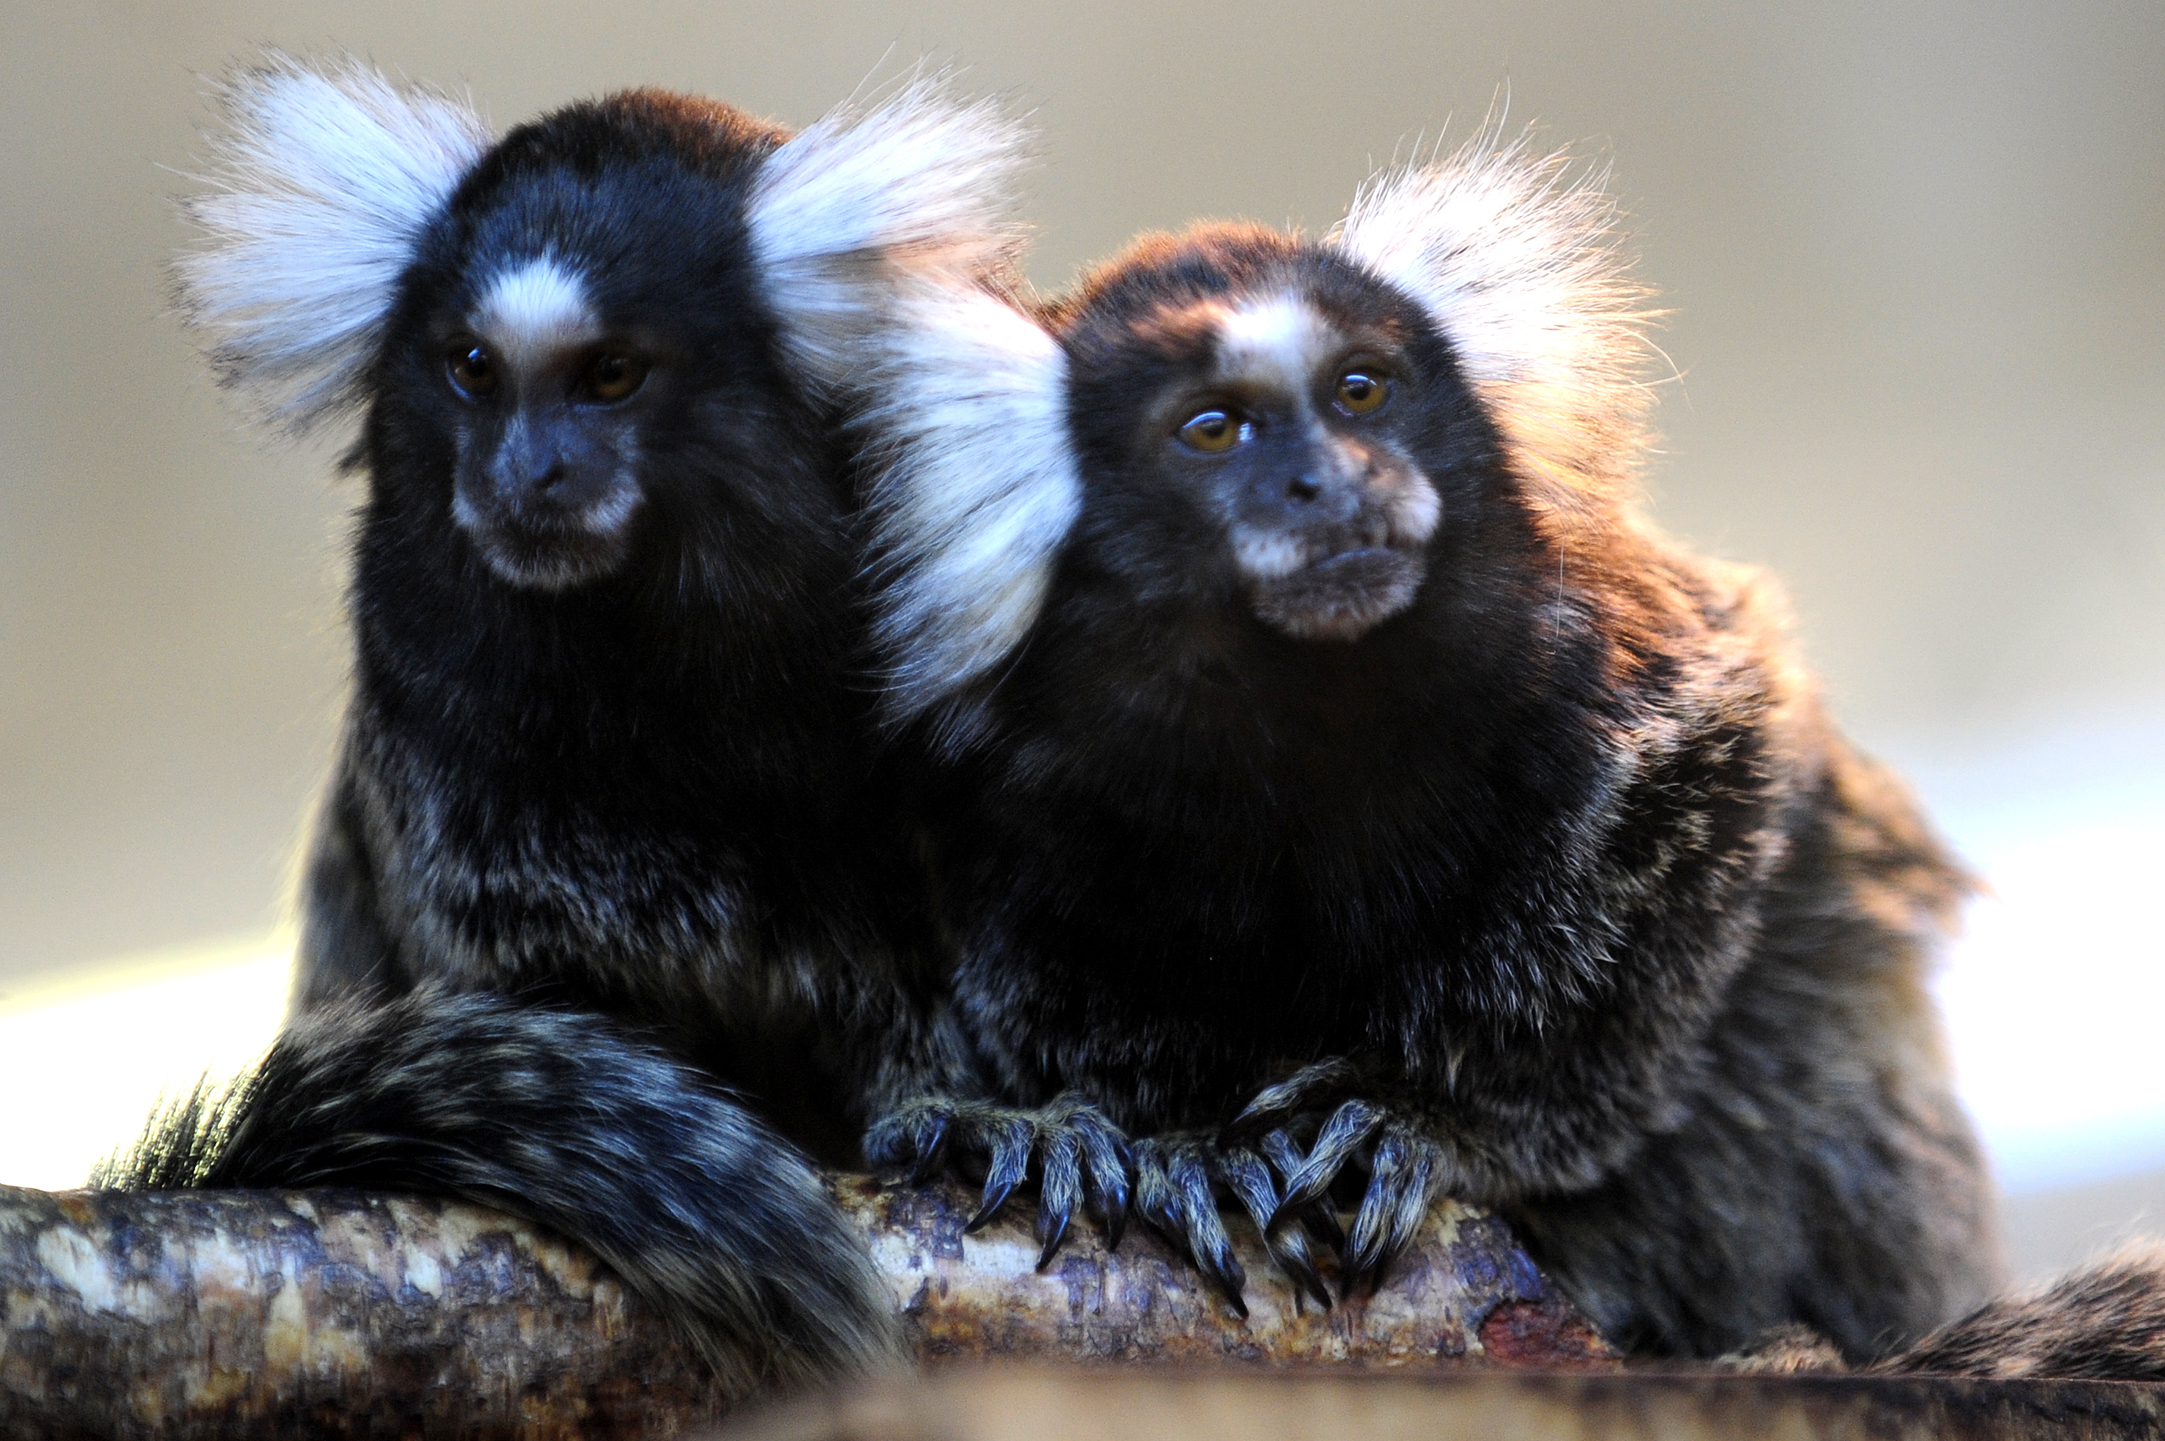 Row Over Monkeys On Display At Garden Centre The Bolton News